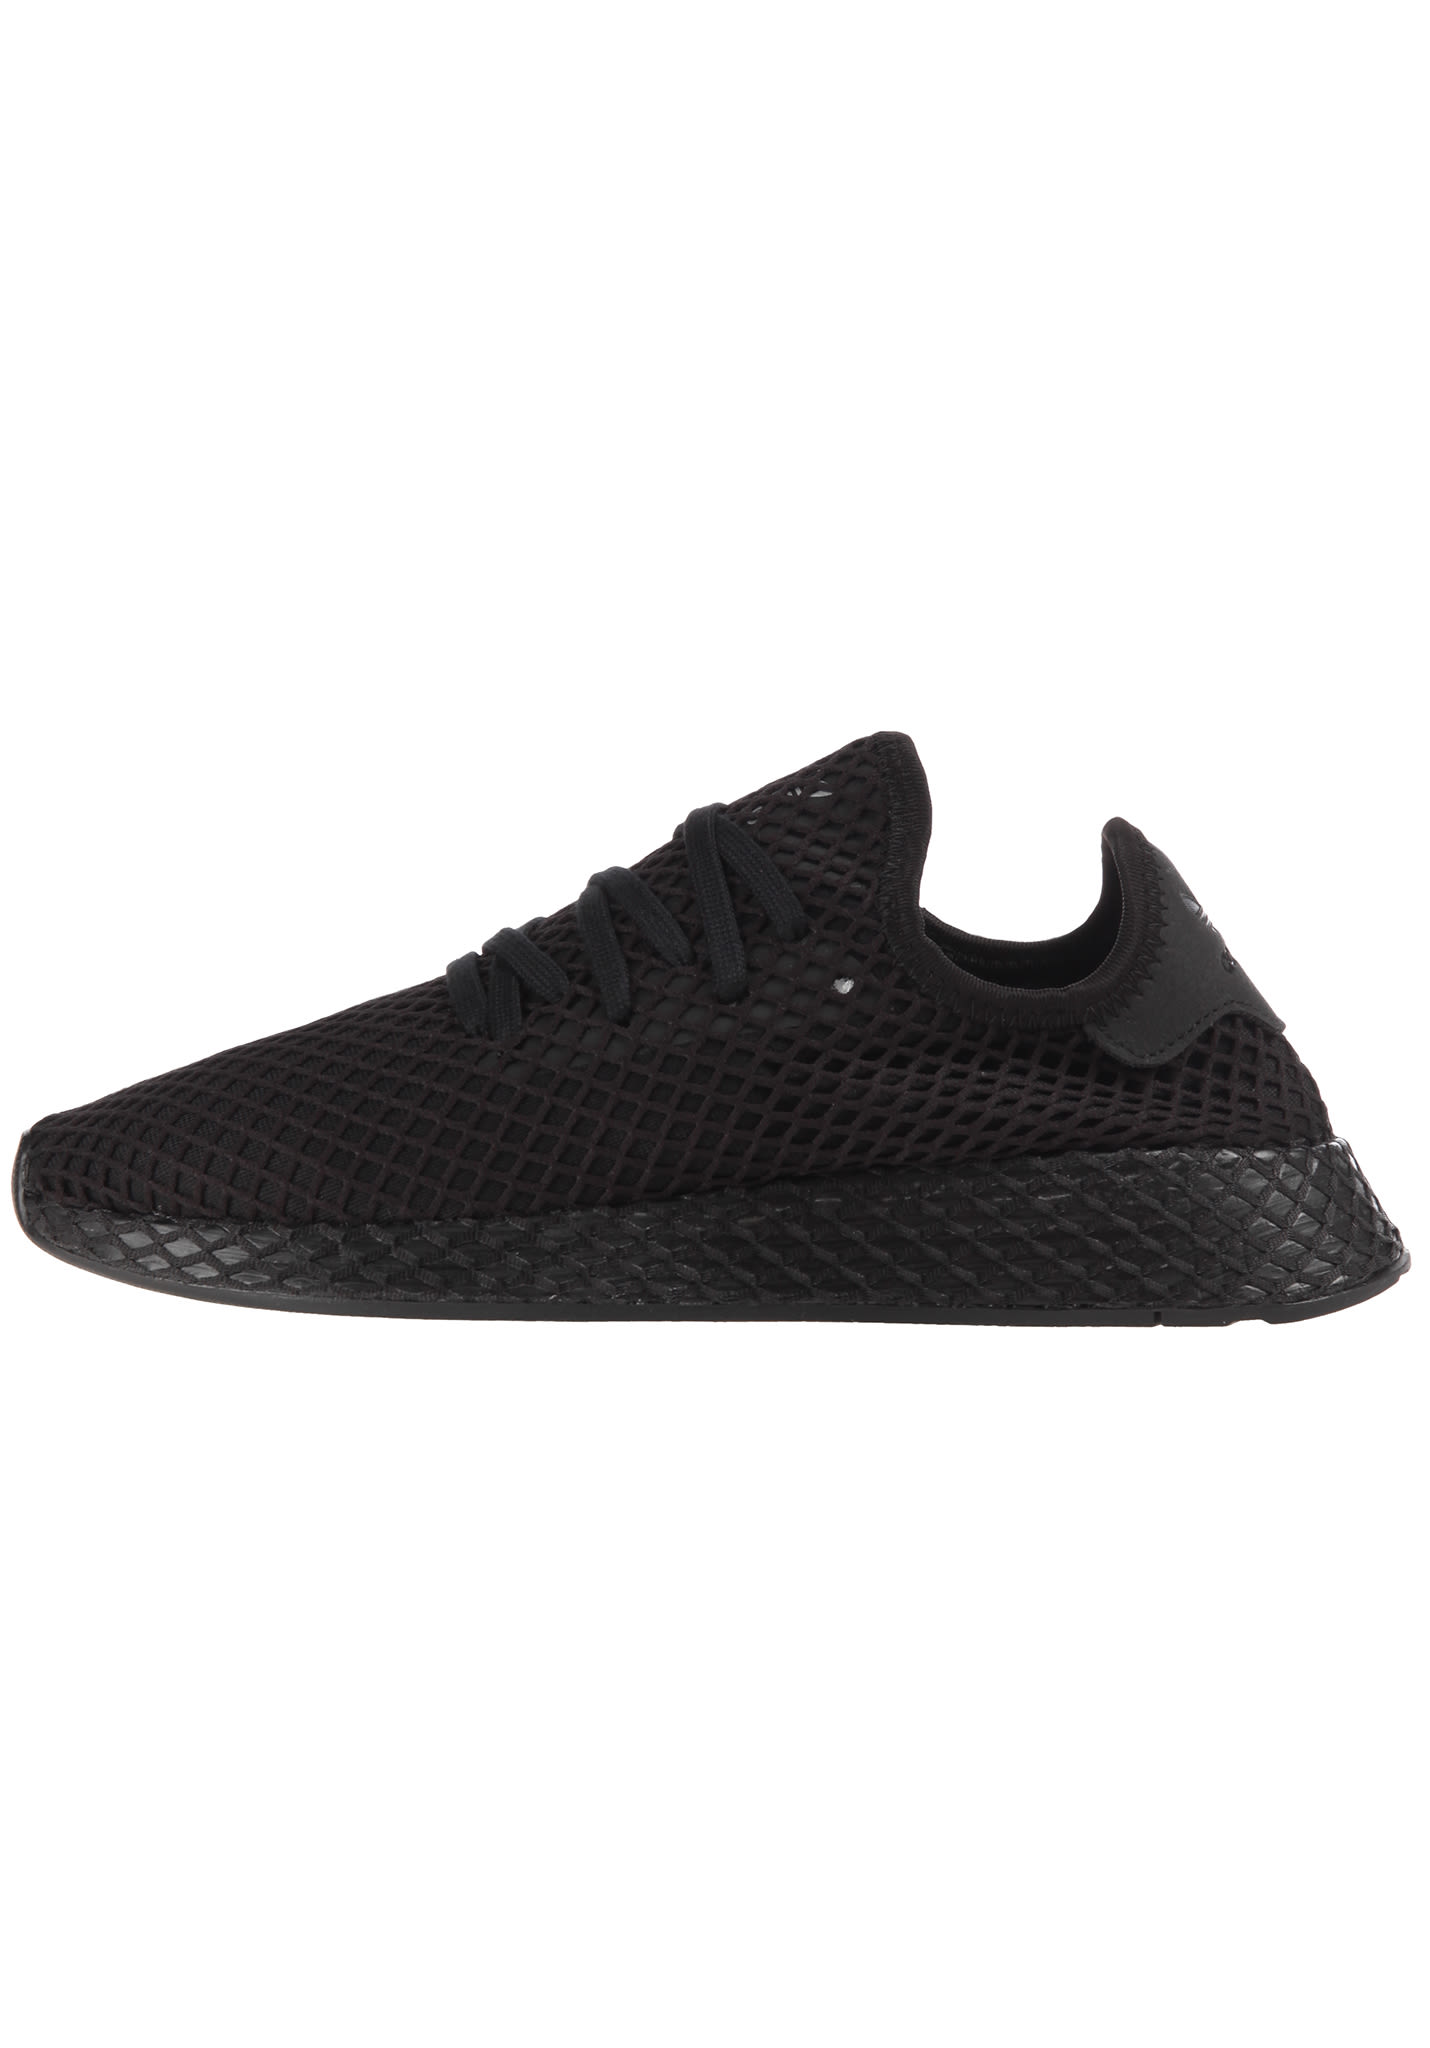 c94721695cabf ADIDAS ORIGINALS Deerupt Runner - Sneakers - Black - Planet Sports